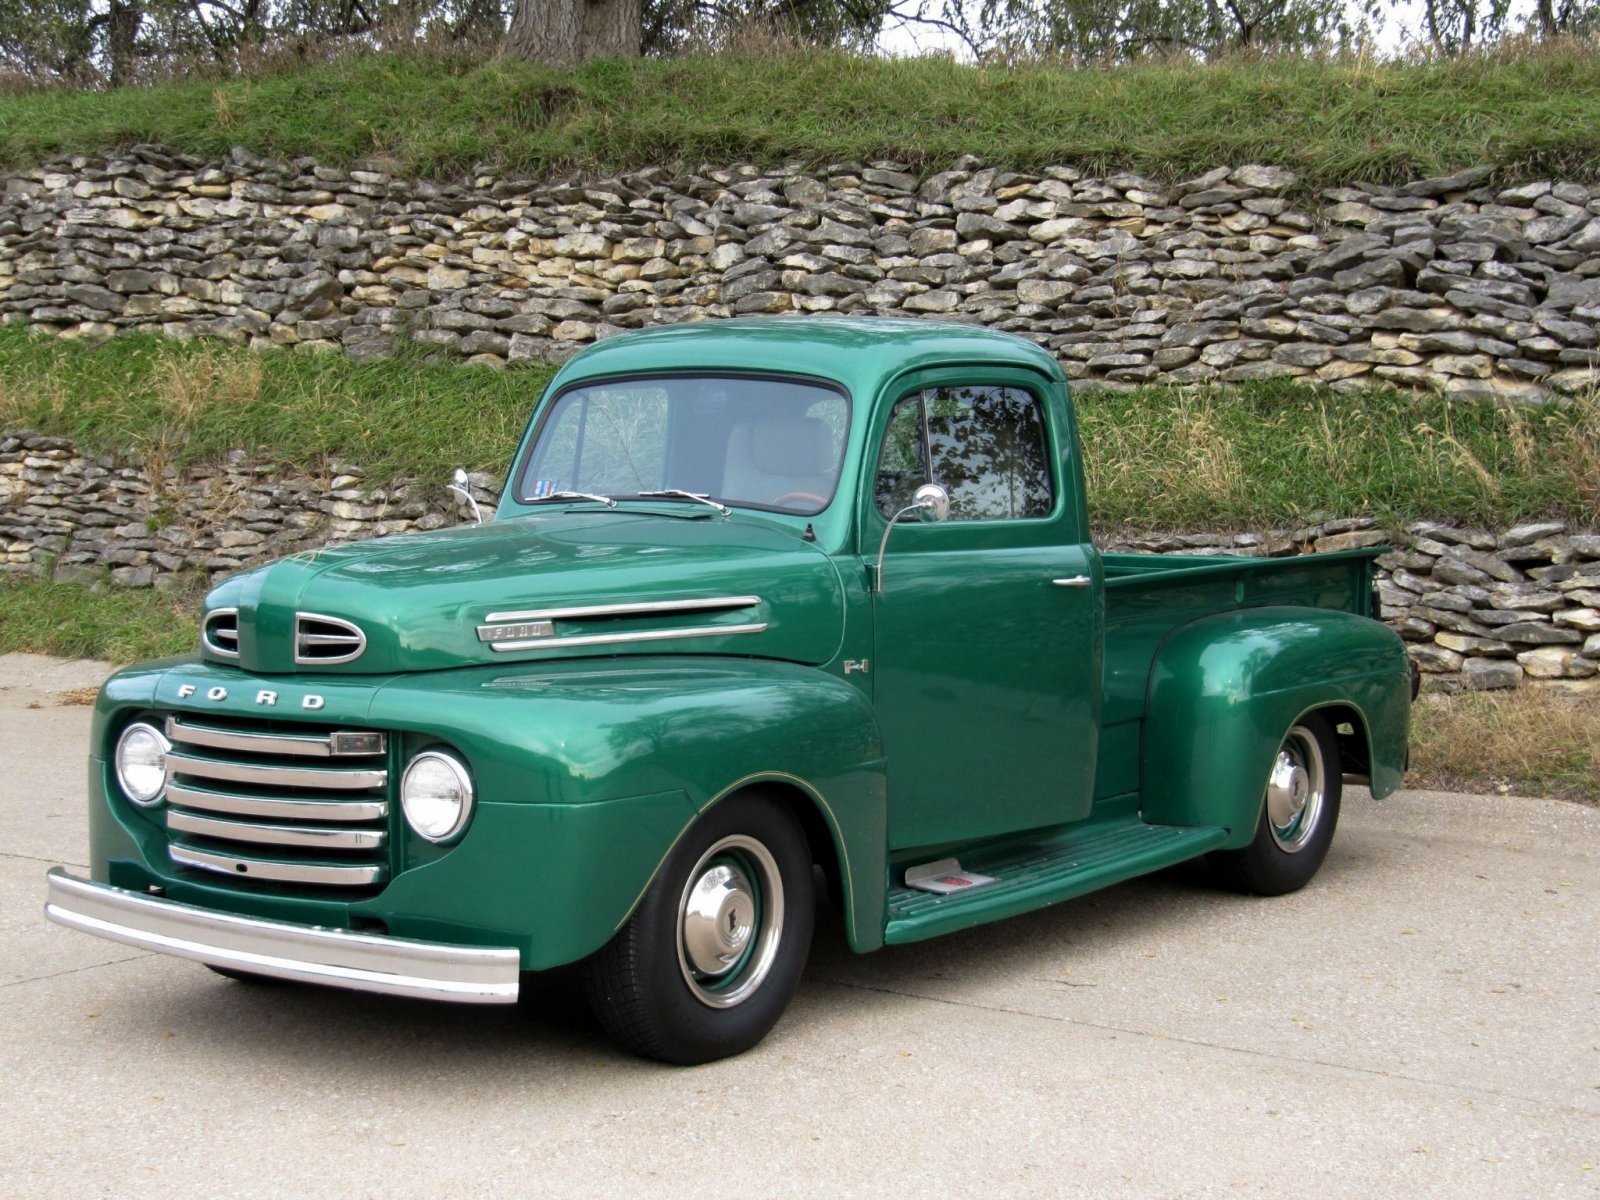 1950 FORD F-1 STEPSIDE LONG-HAULER GLOSS GREEN ENVY 12.jpg